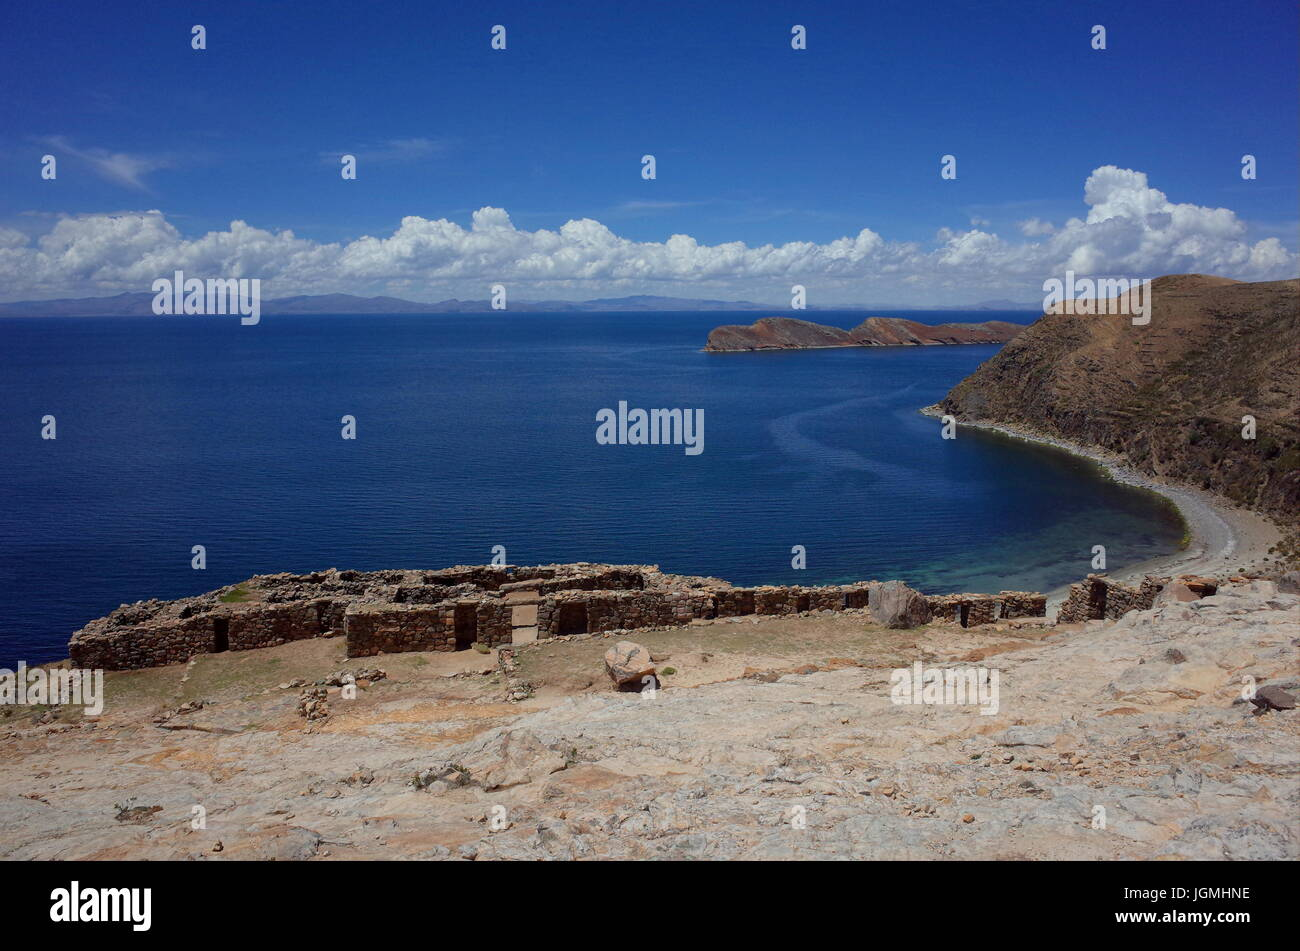 Stunning view of the Chincana Ruins overlooking the beach on the Isla del Sol on Lake Titicaca - Stock Image